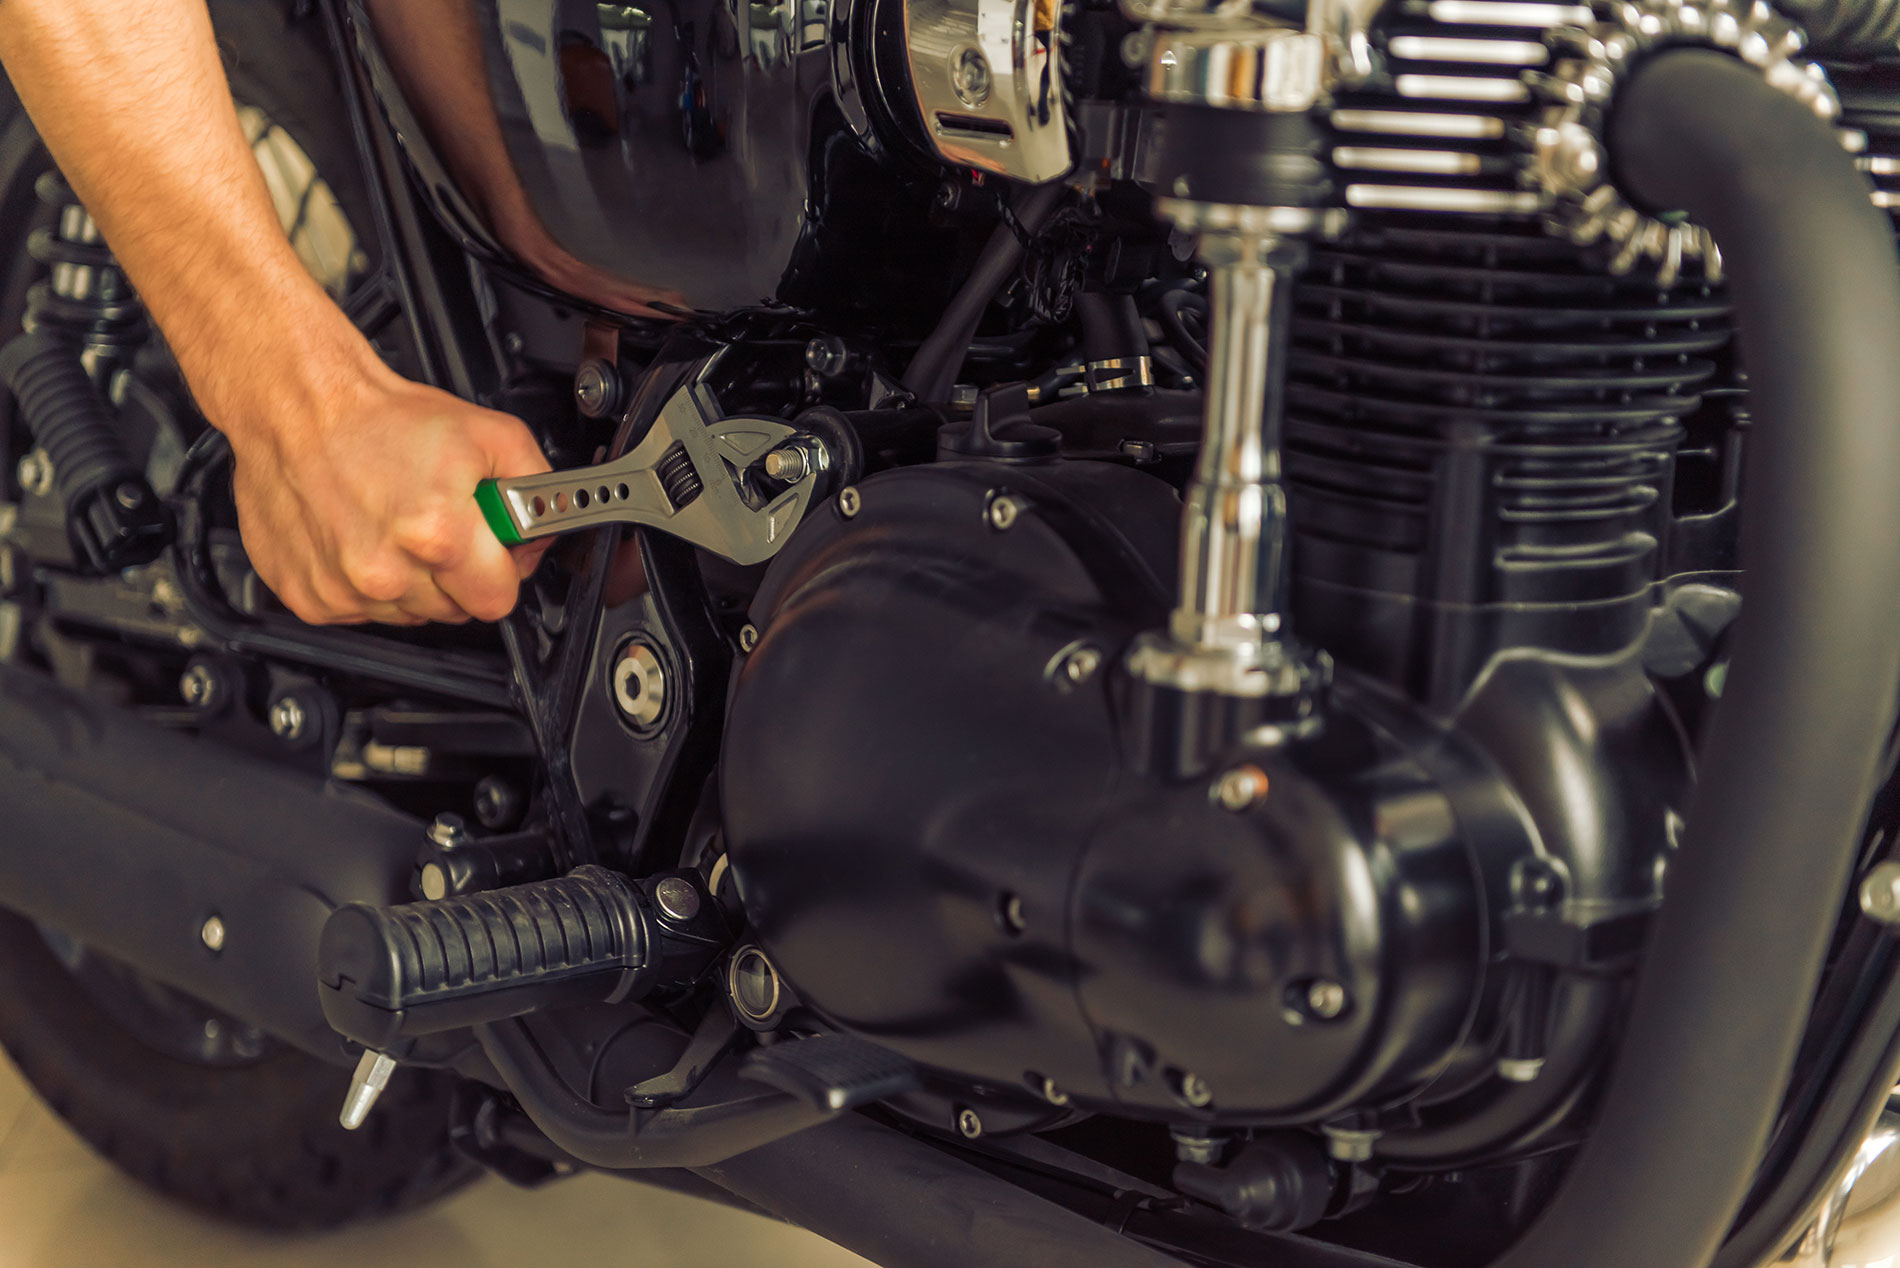 Phoenix Motorcycle Repair